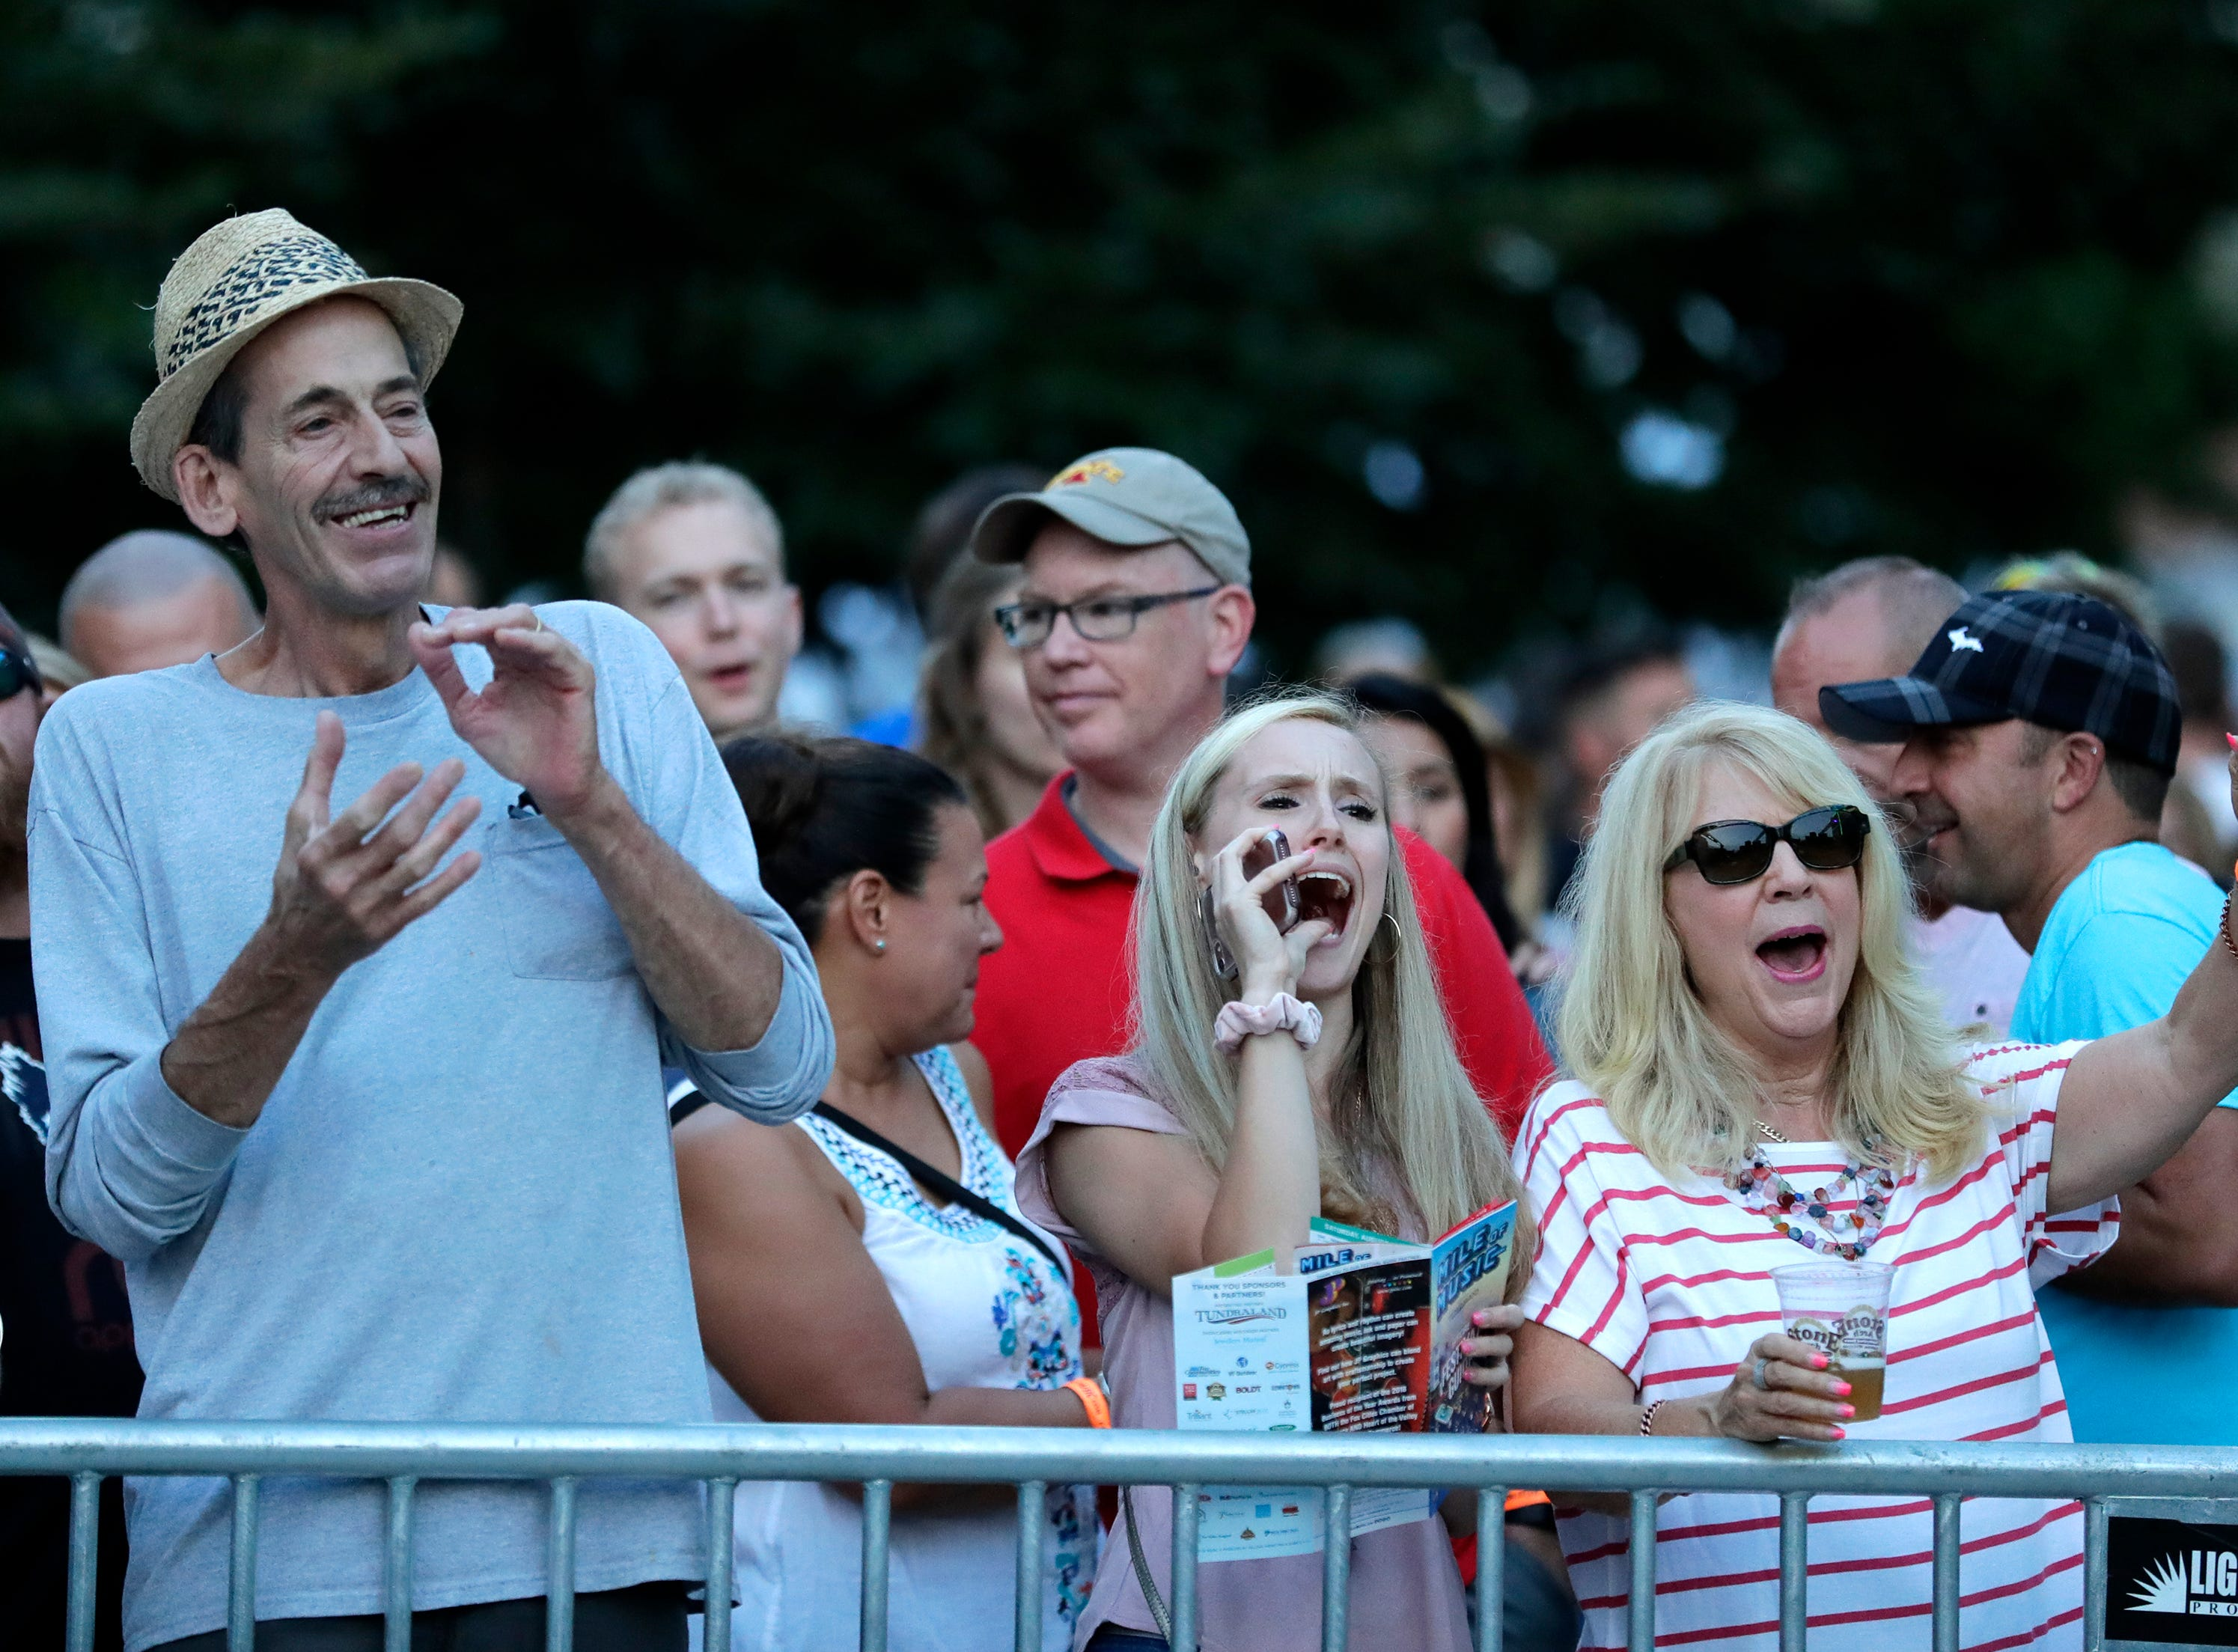 Fans cheer for The JC Brooks Band performance at Houdini Plaza during the Mile of Music Friday, August 3, 2018, in Appleton, Wis.  